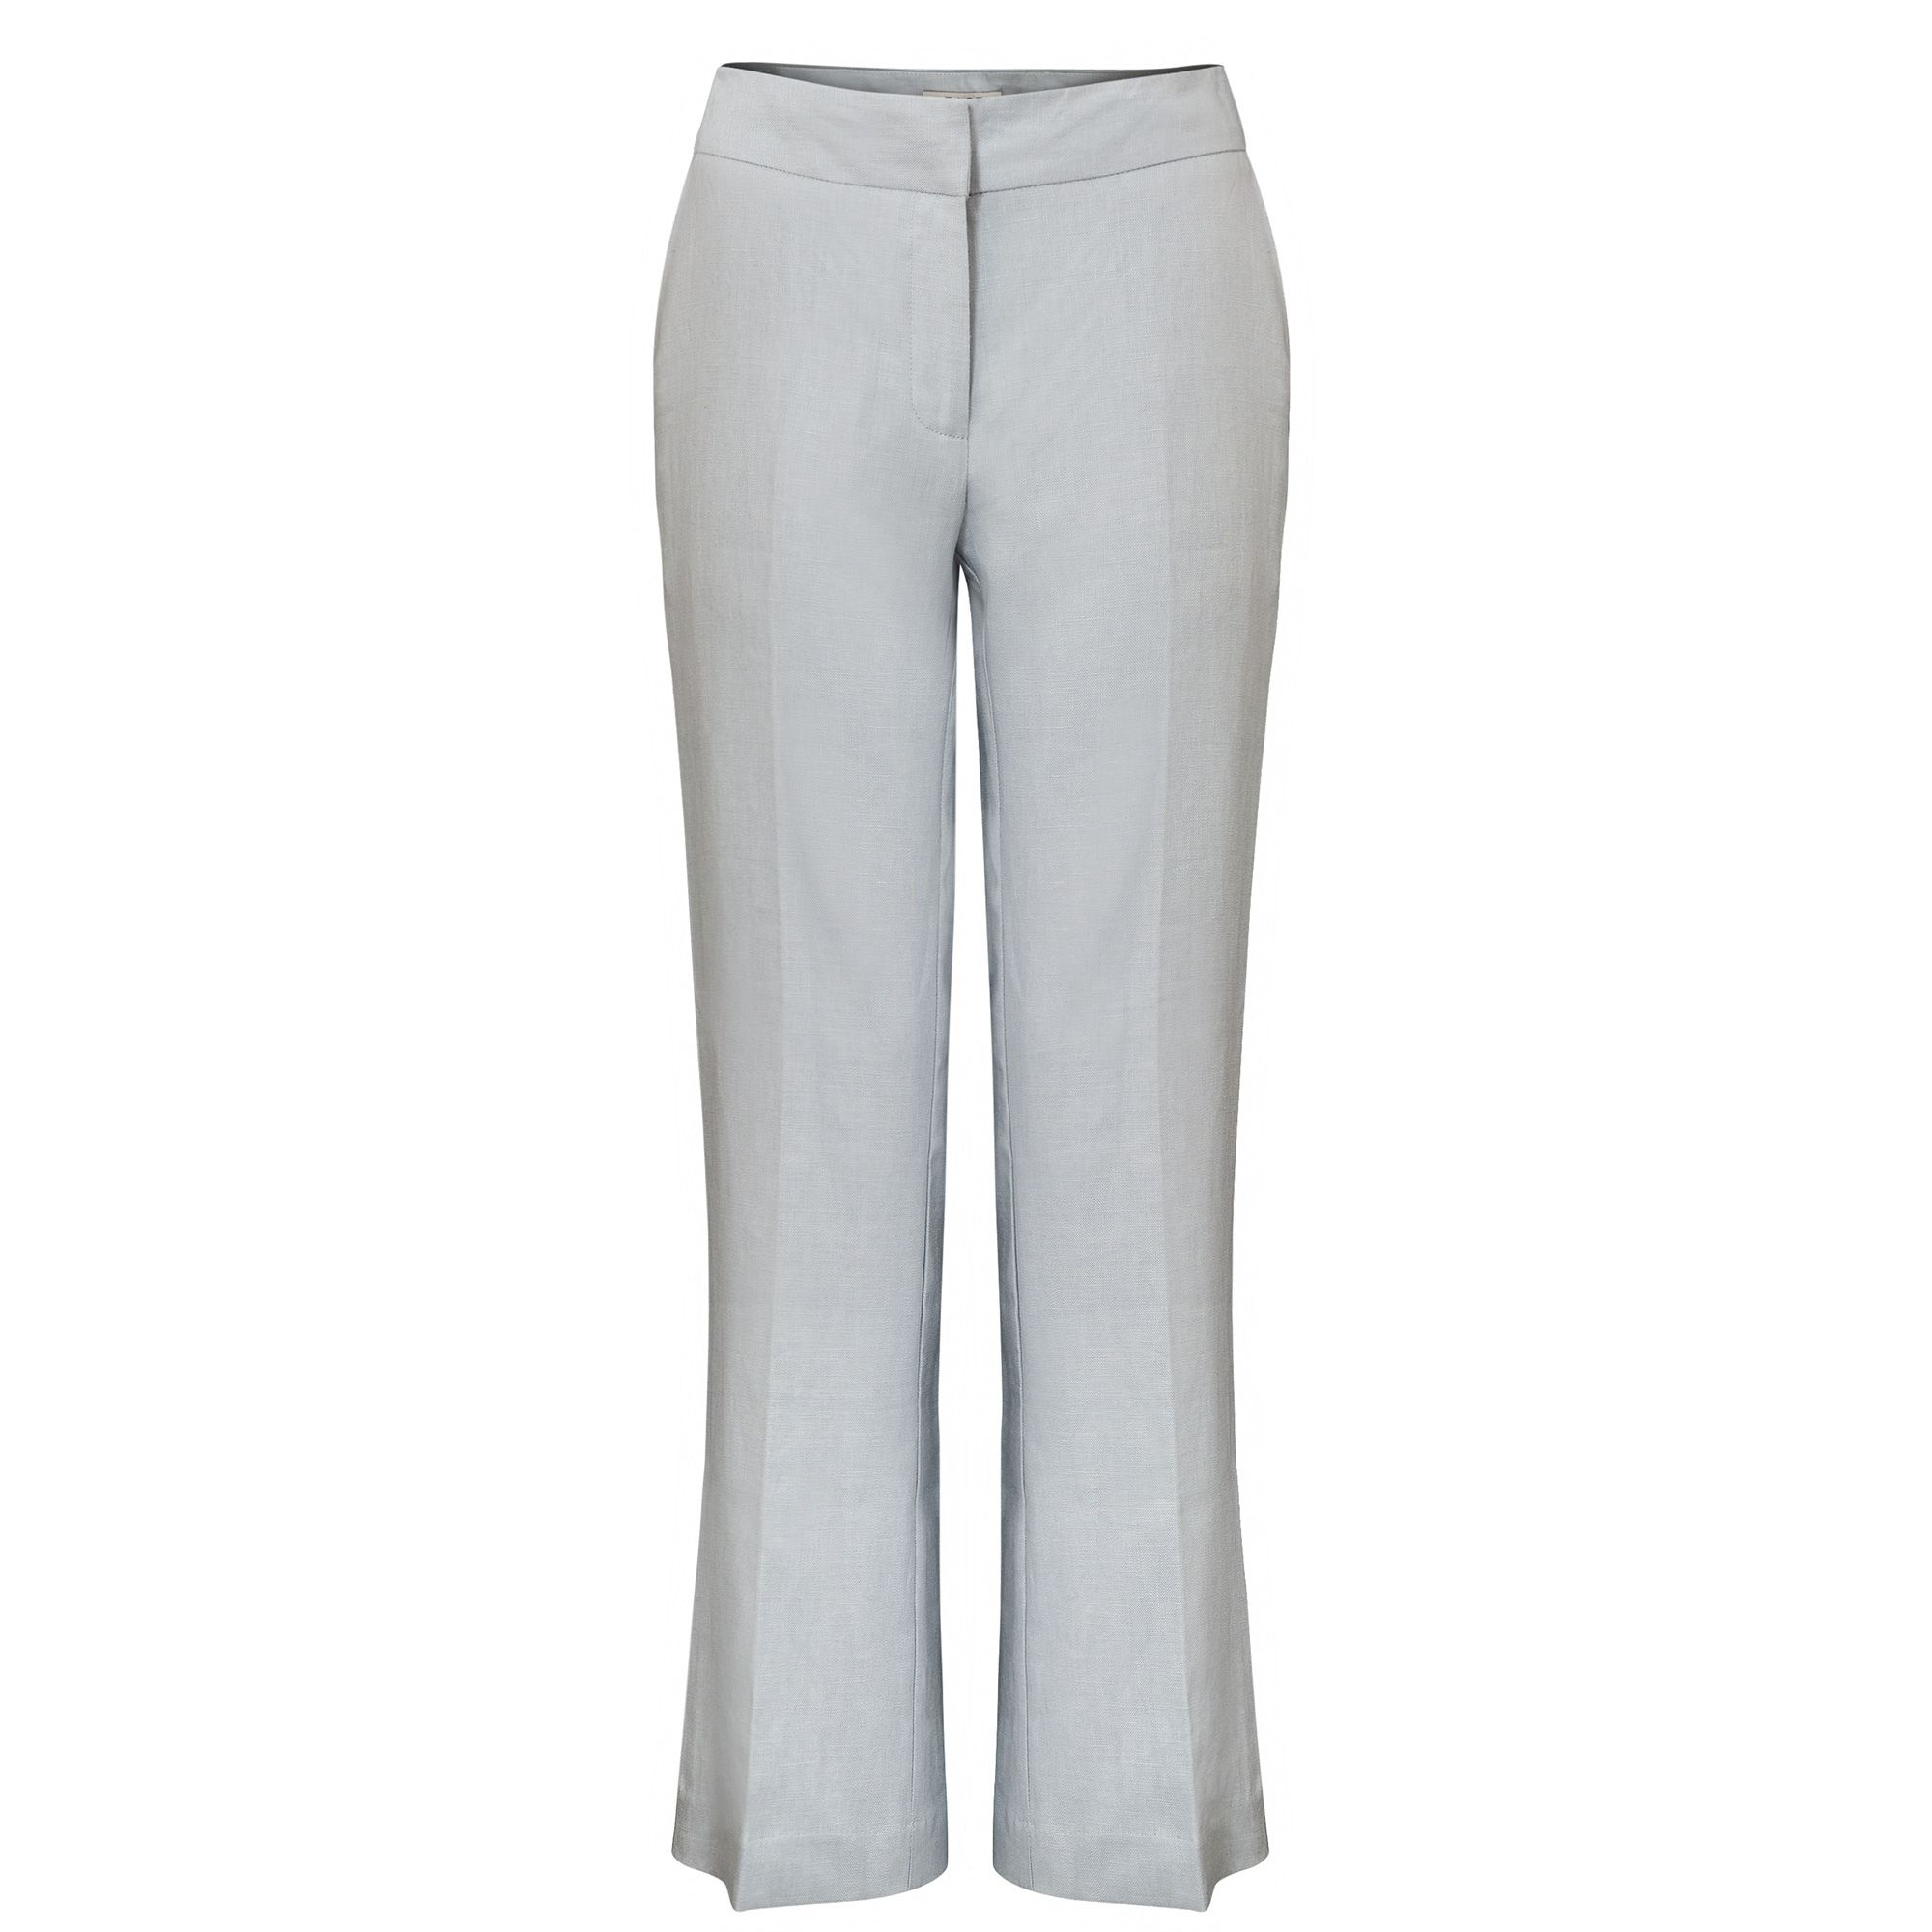 East Linen Victoire Trouser, Grey